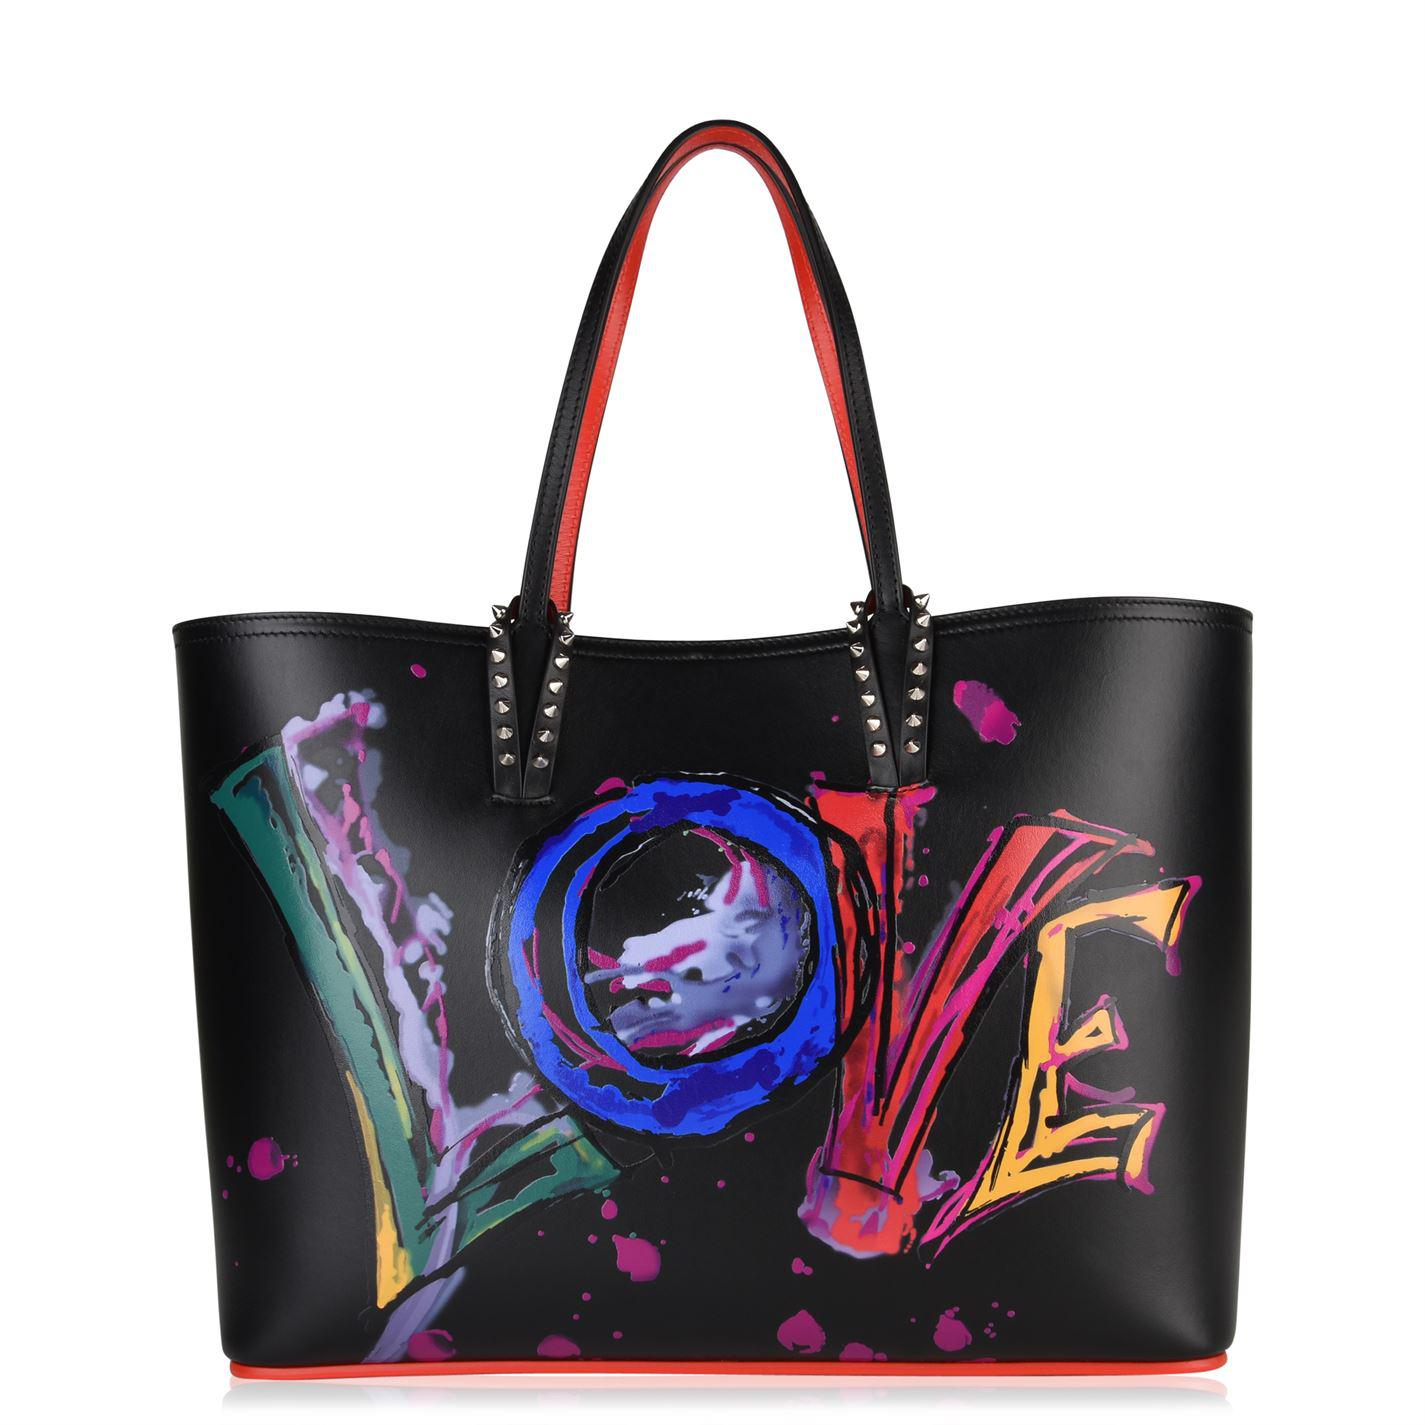 Lyst - Christian Louboutin Cabata Love Tote Bag in Black - Save 50% fdf9ff4730681